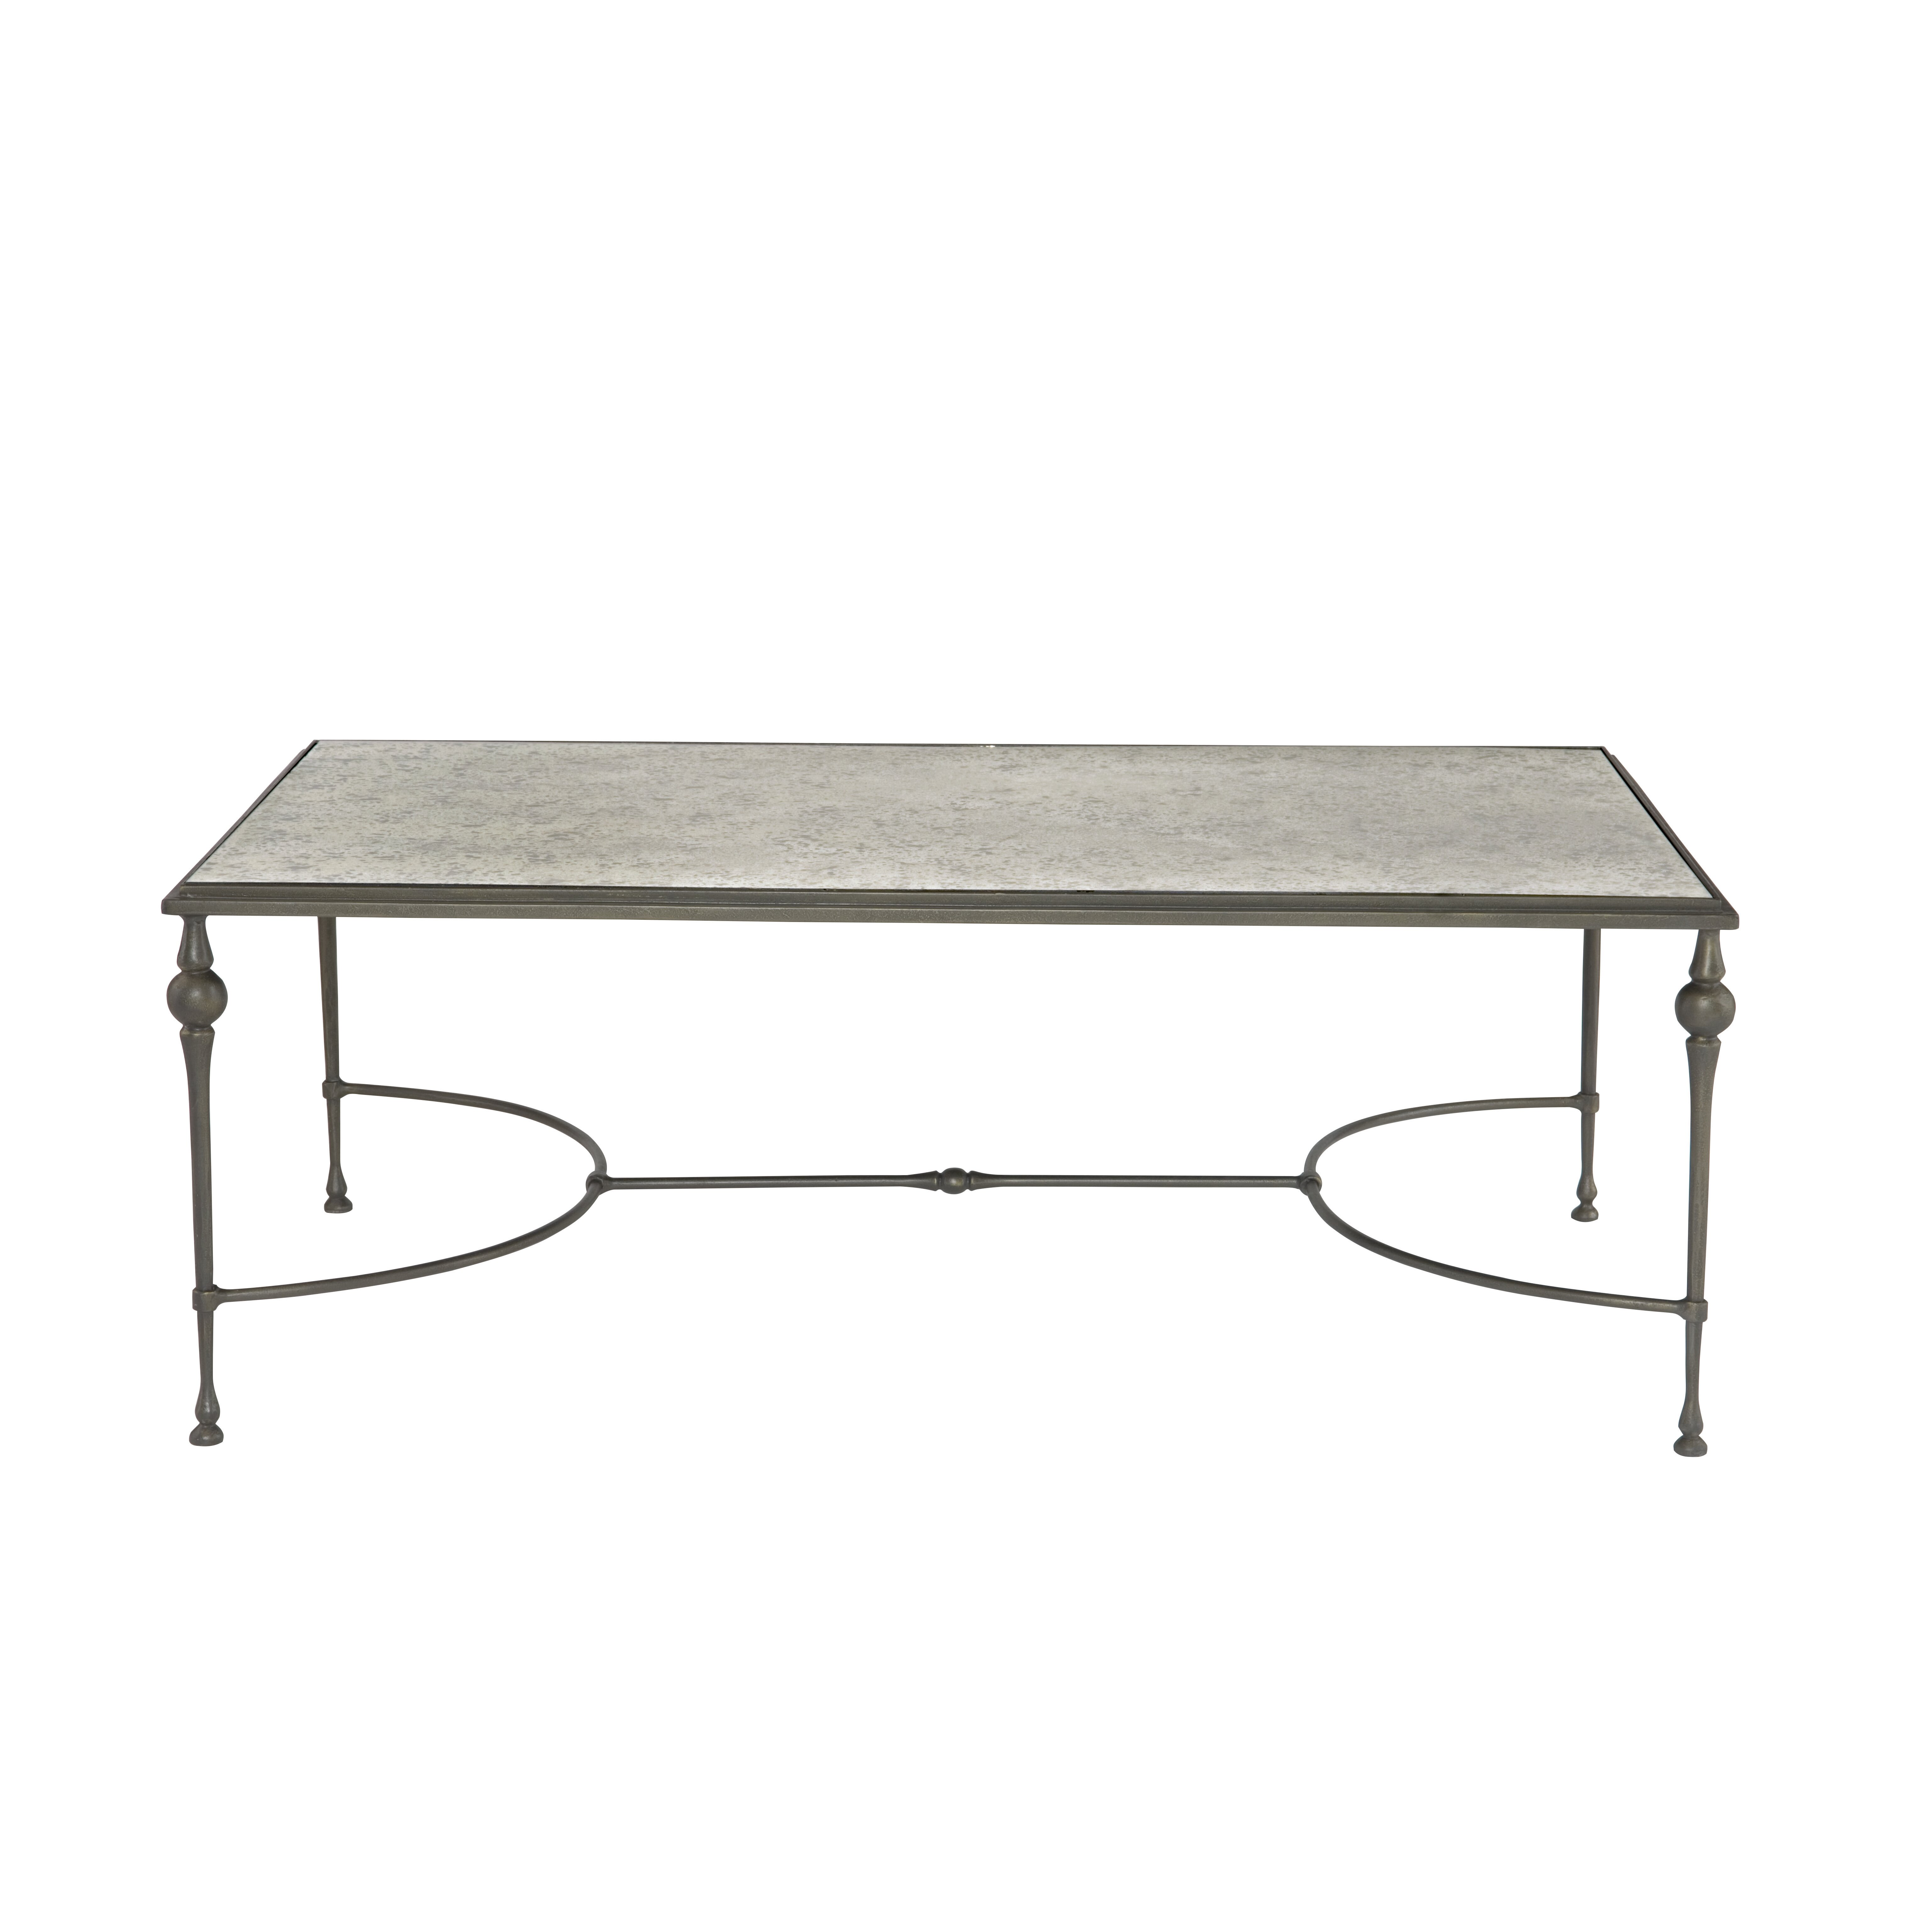 Bernhardt tristan coffee table reviews wayfair Bernhardt coffee tables